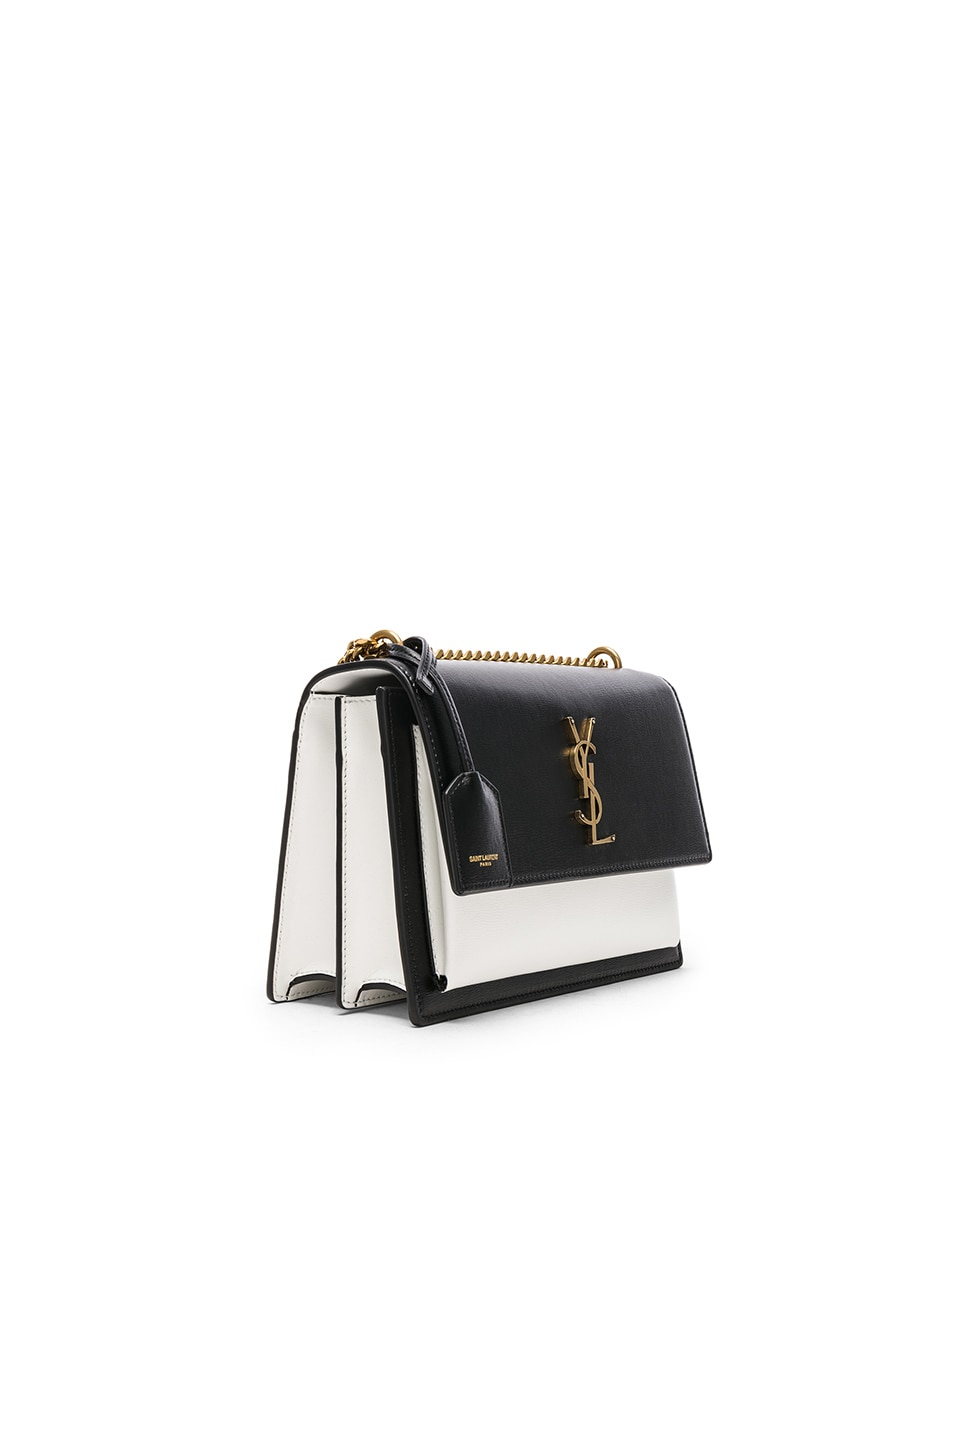 ffc9be34930 Image 3 of Saint Laurent Medium Colorblock Leather Sunset Chain Bag in Black  & Pearl White